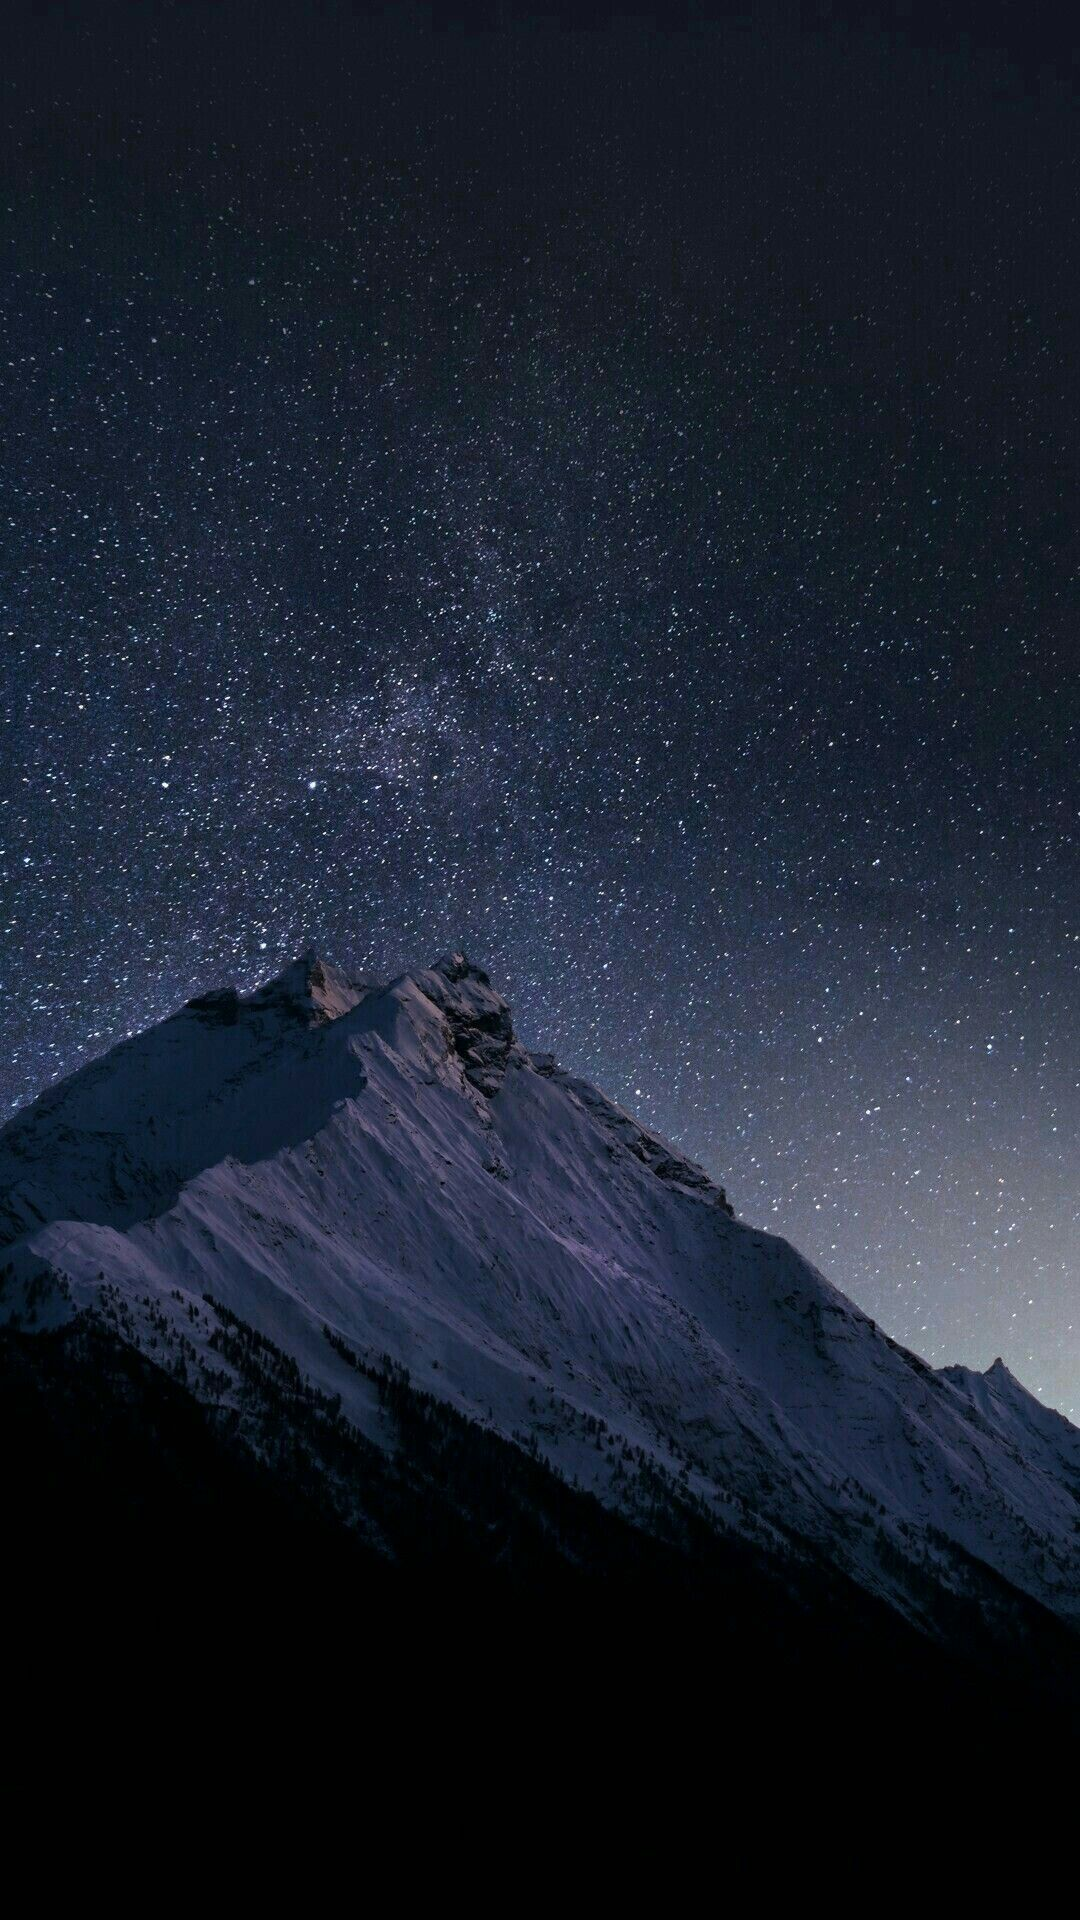 Beautiful Mountain art Night with stars in the sky